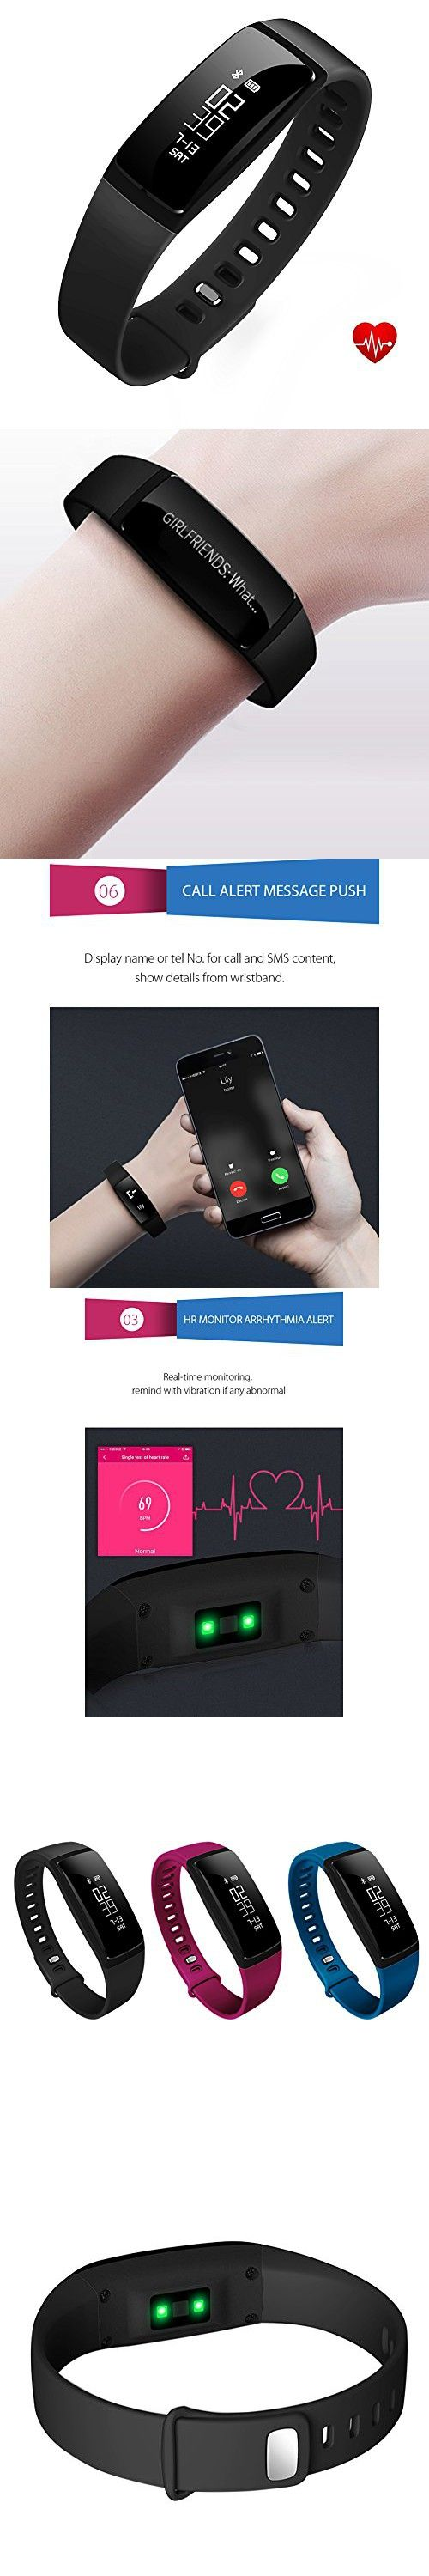 Fitness Tracker, Health Sleep Activity Tracker, Upgraded Watch Wristband with Blood Press Monitor, Heart Rate Monitor Smart Bracelet for Outdoor Sports, for iPhone/Android Smart Phone